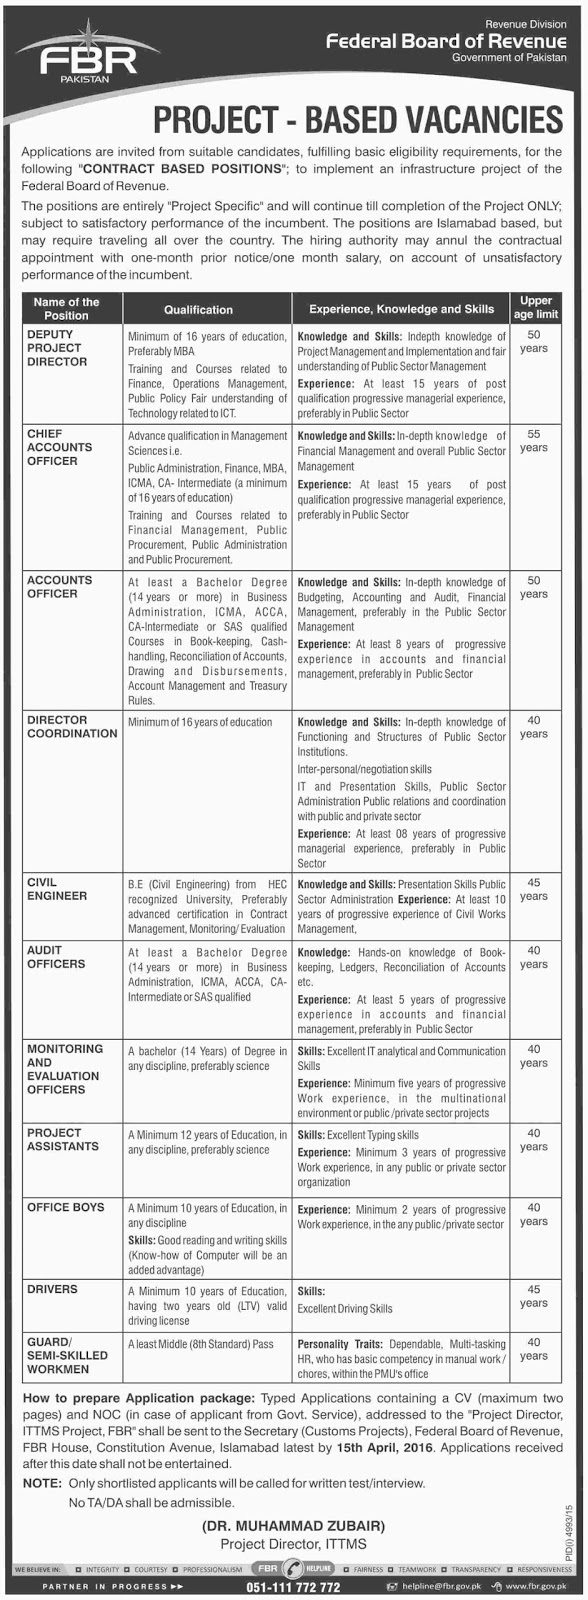 Audit Officers & Assistant Jobs in FBR